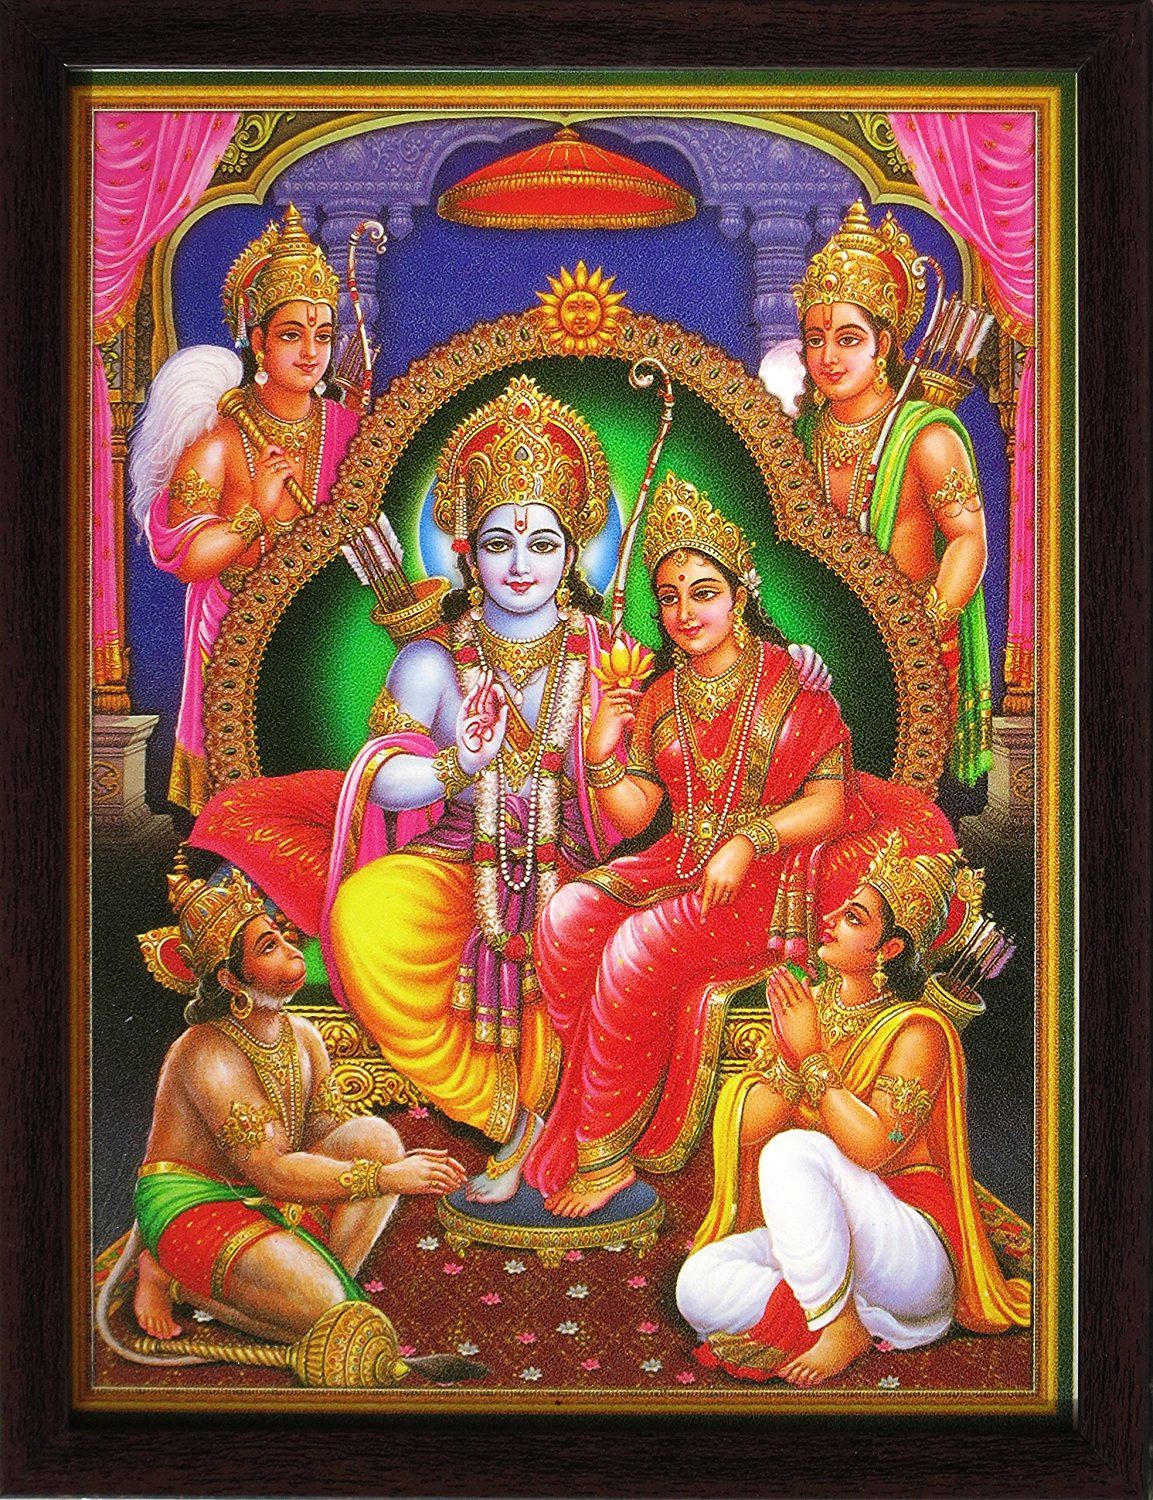 Lord Sita Ram sitting on throne and Lord Hanuman and ram brother worshiping him, A Holy Hindu Religious Poster painting with frame for Worship purpose